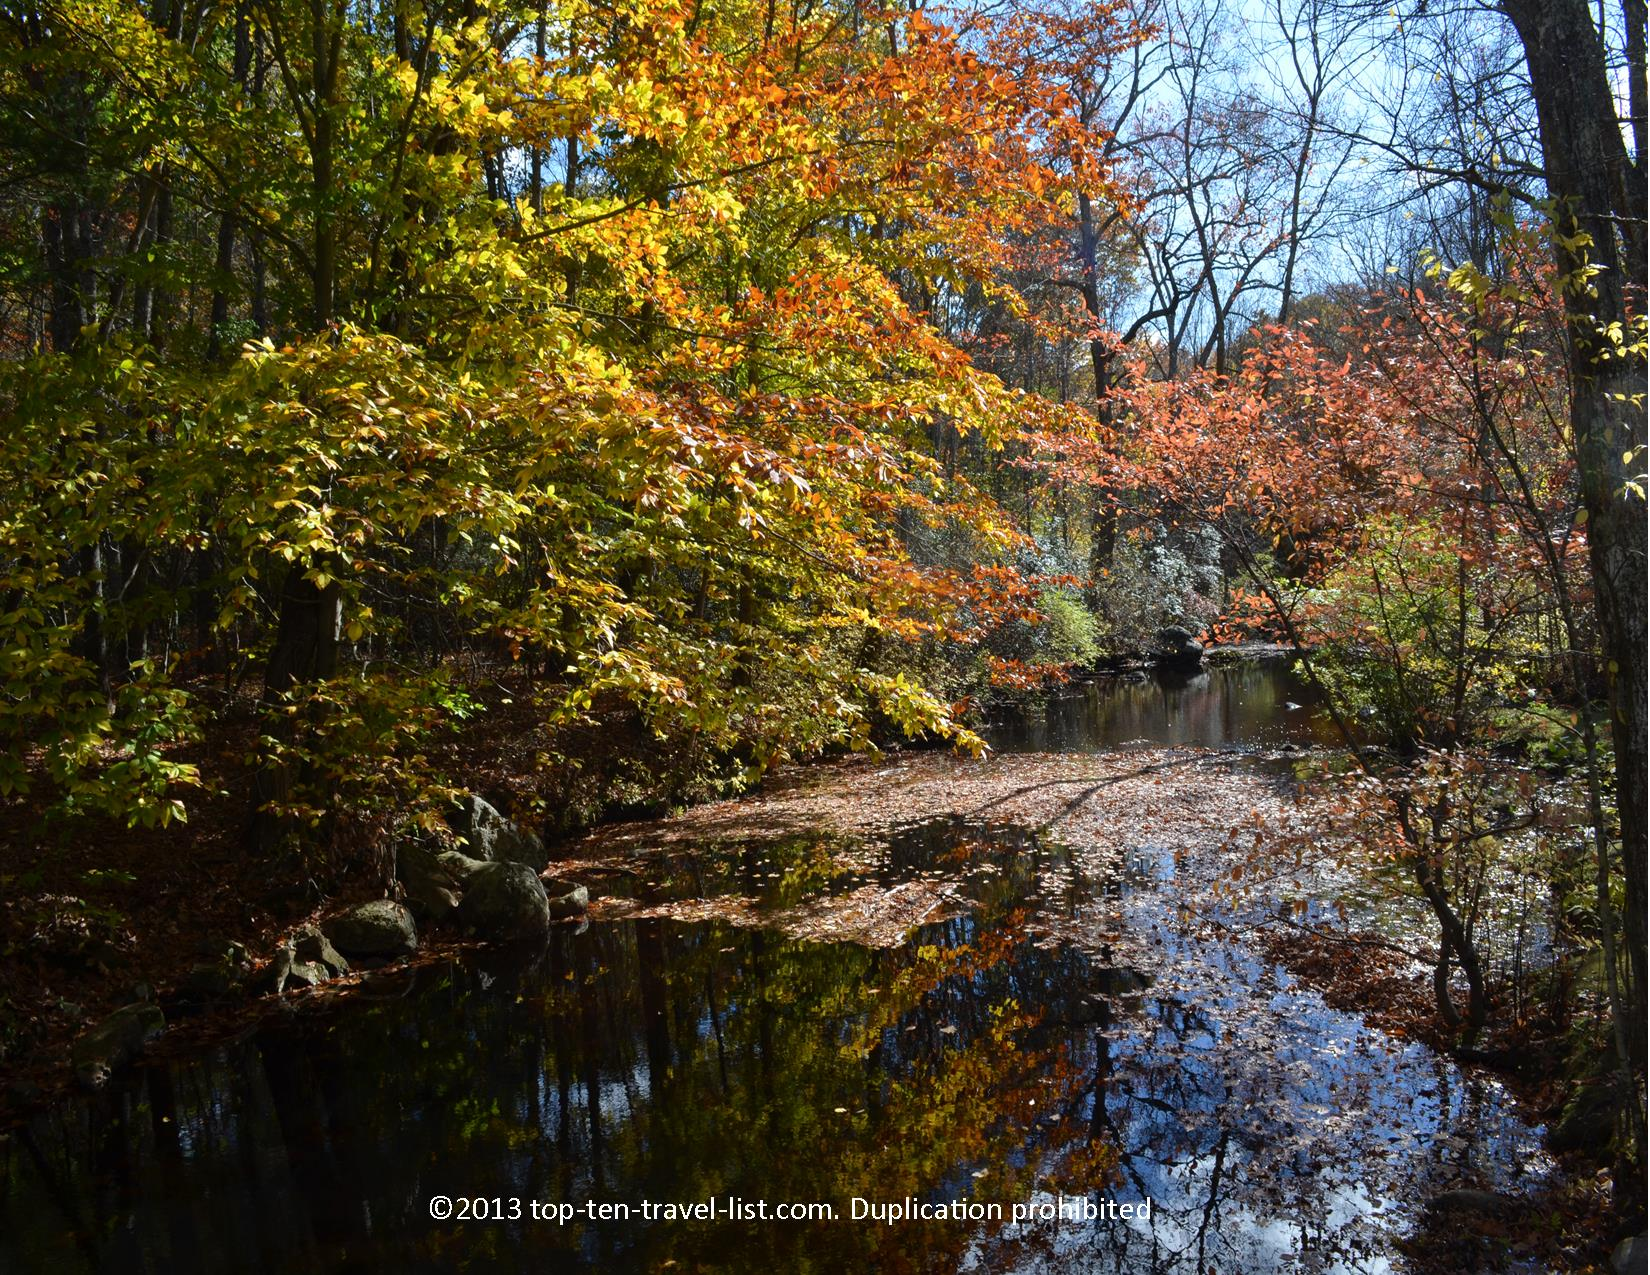 The beautiful fall colors at Devil's Hopyard State Park in East Haddam, Connecticut